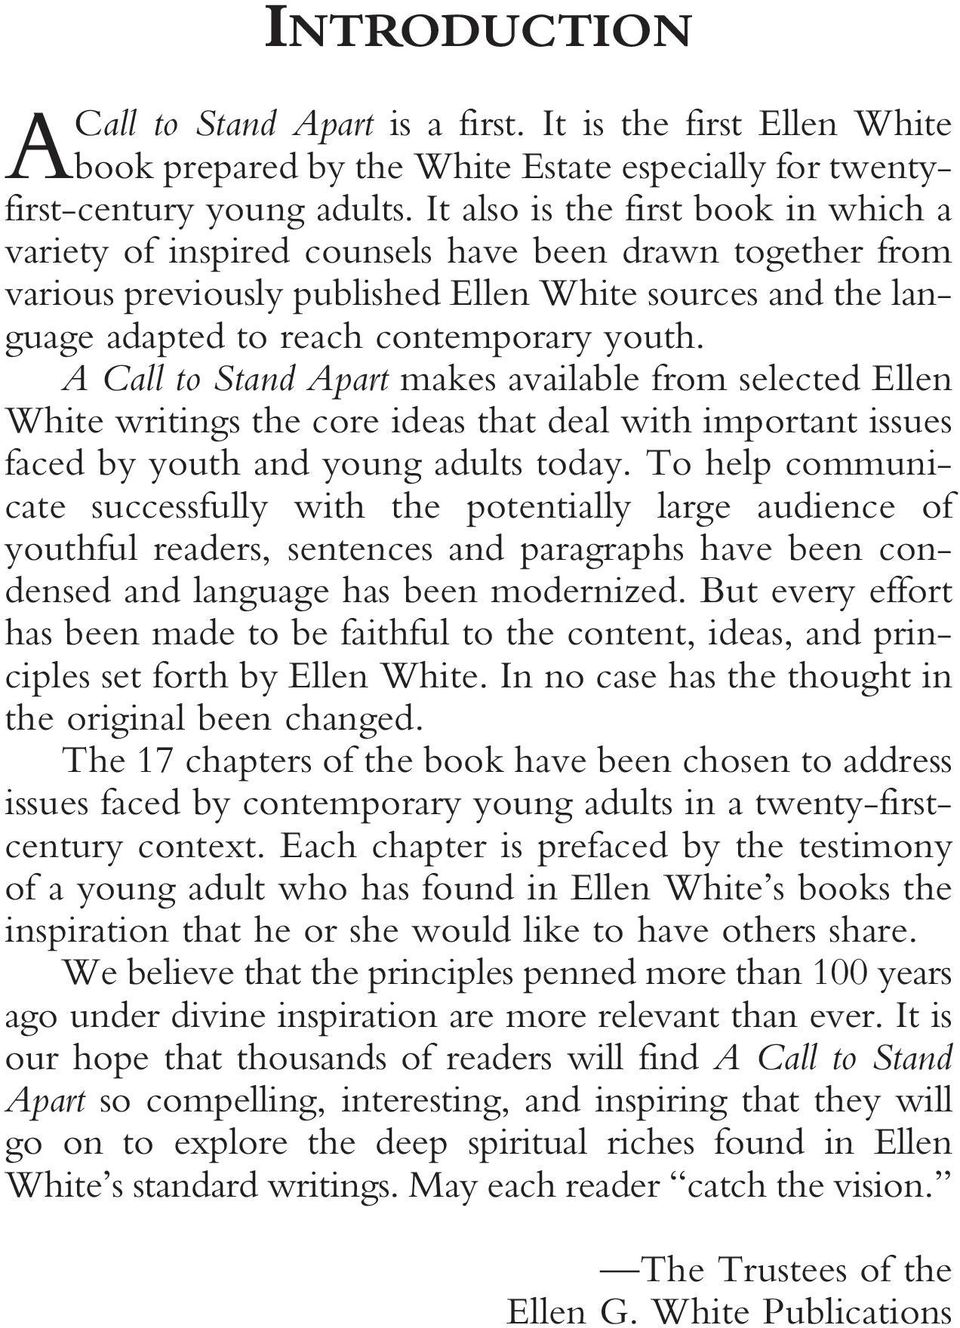 A Call to Stand Apart makes available from selected Ellen White writings the core ideas that deal with important issues faced by youth and young adults today.